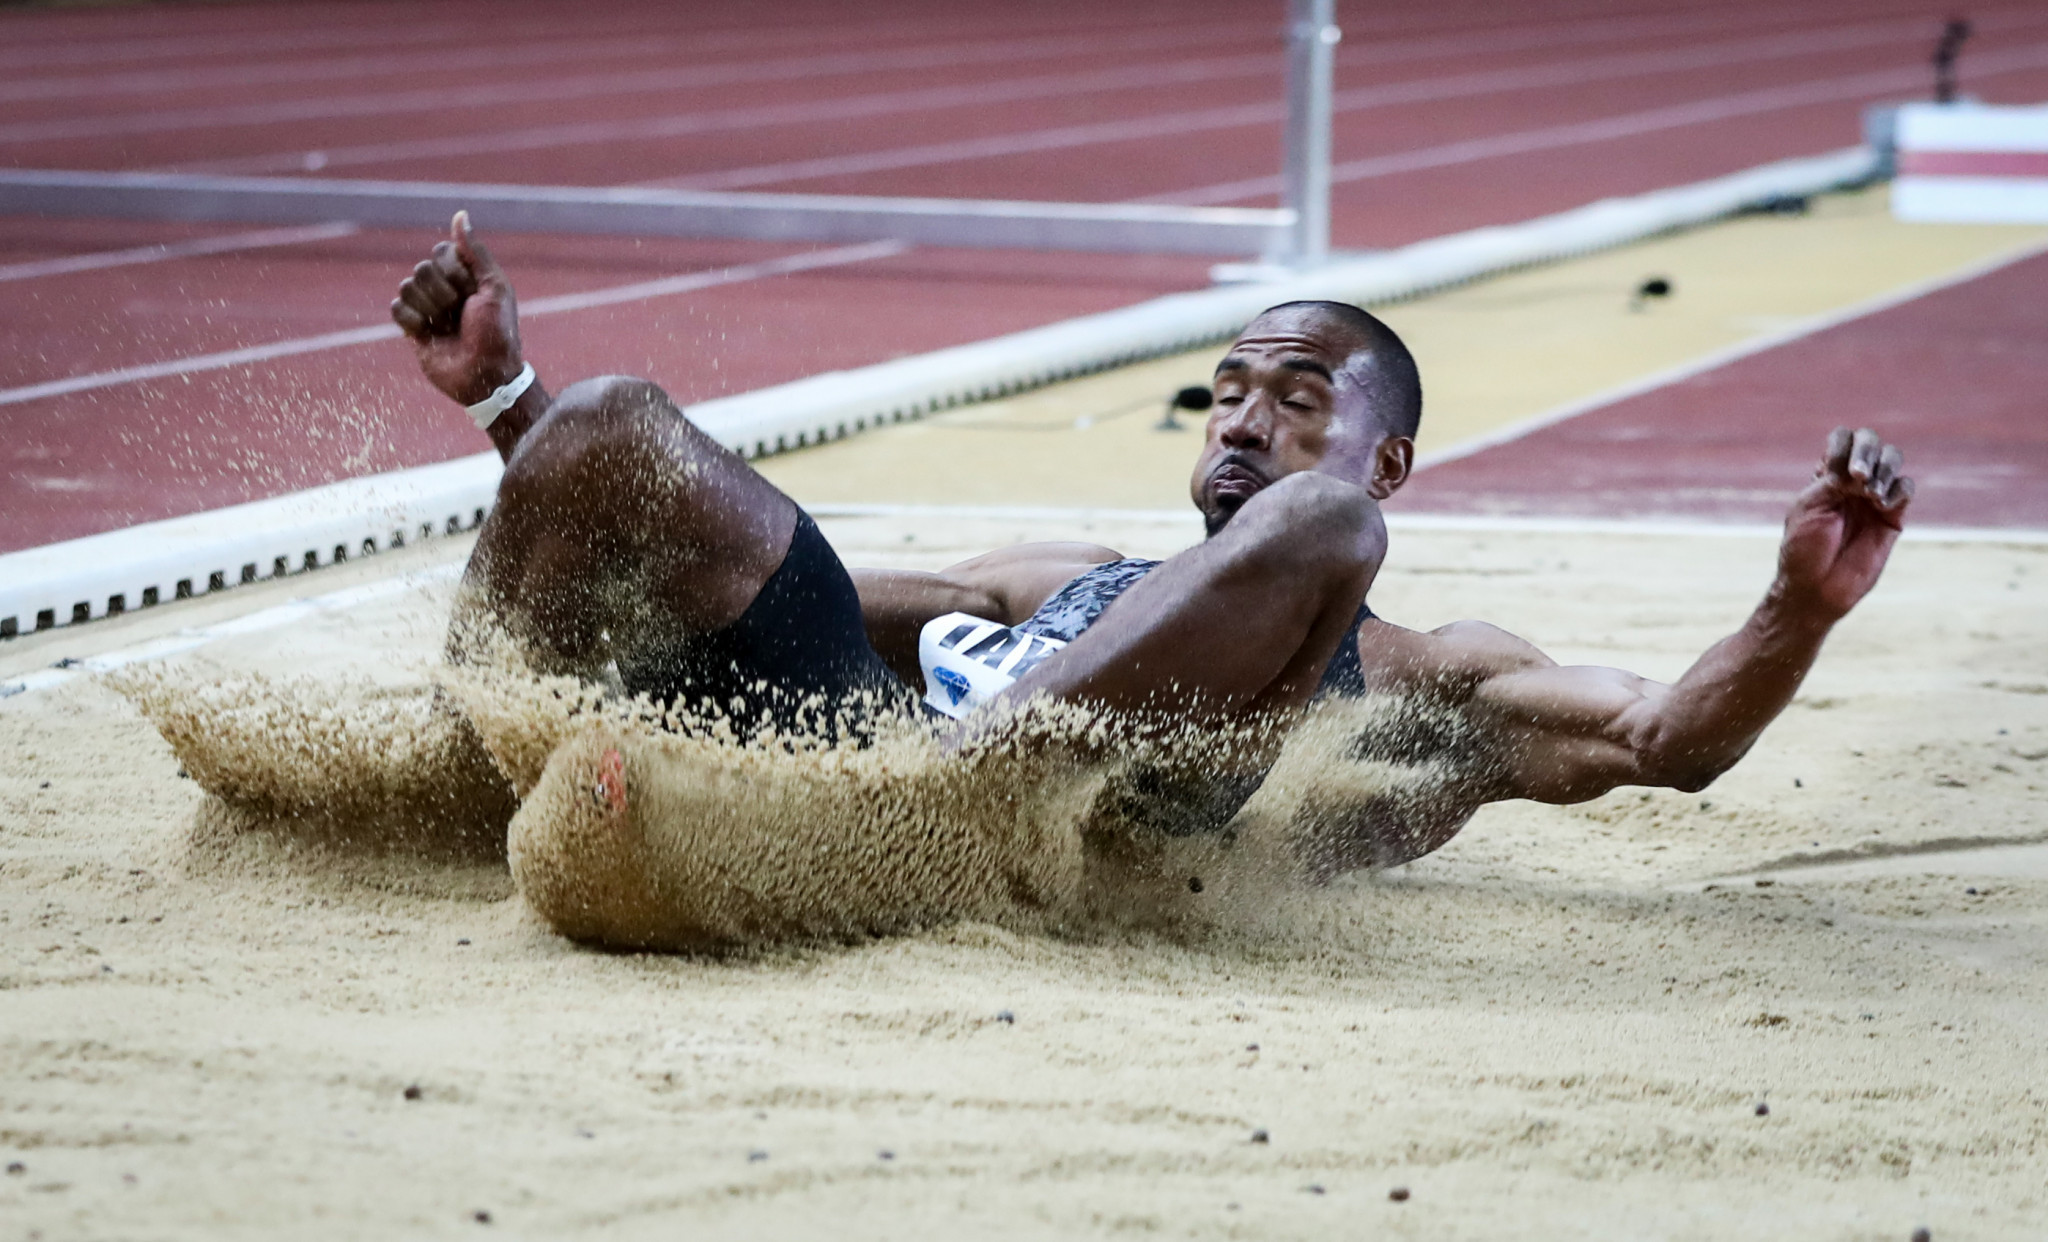 Triple jumper Christian Taylor faces stiff competition in Brussels ©VALERY HACHE/AFP/Getty Images